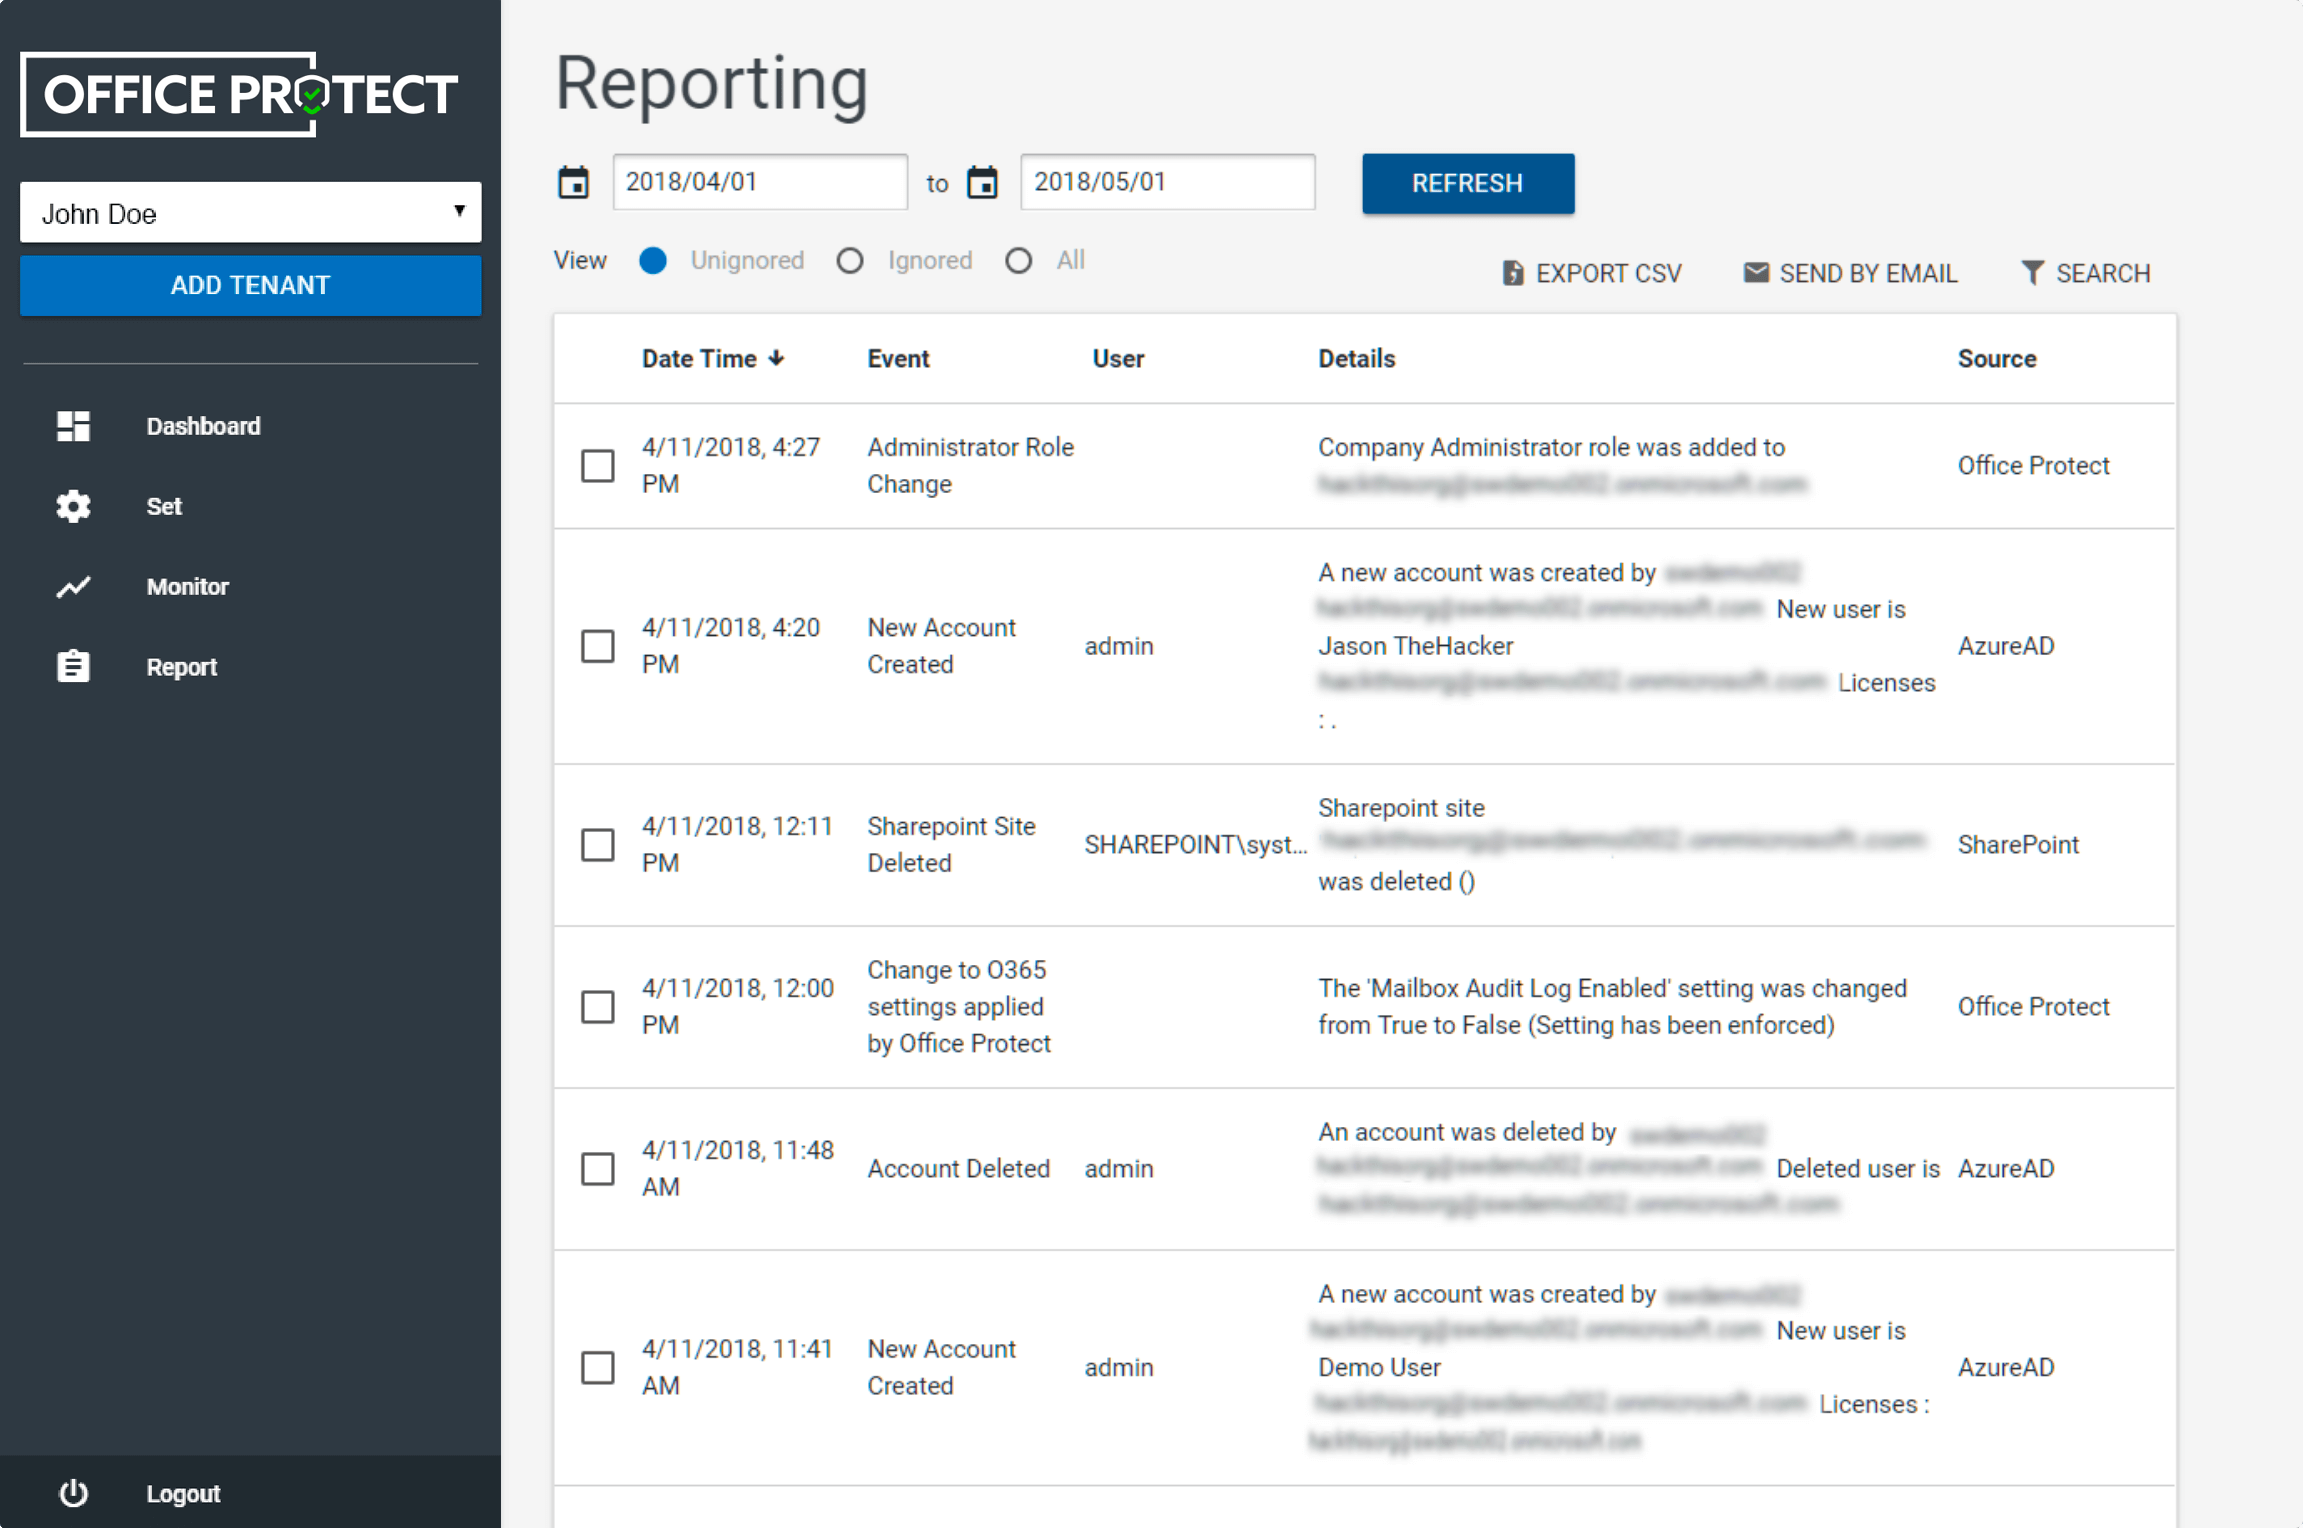 Office Protect: Reporting